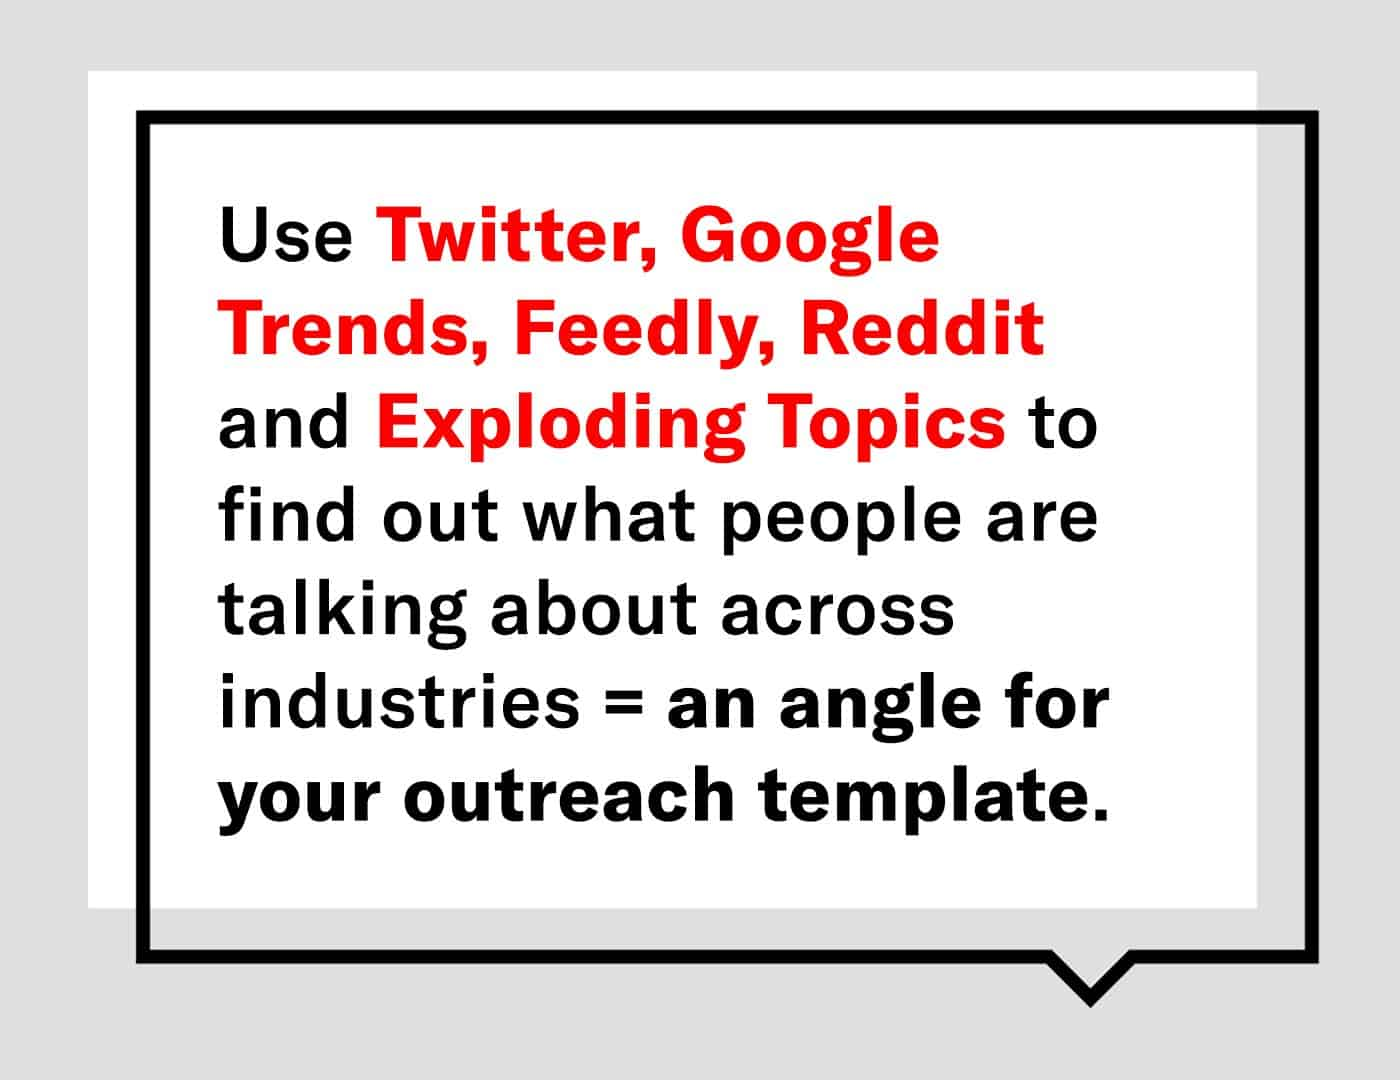 use twitter google trends feedly reddit and exploding topics to find out what people are talking about across industries = an angle for your outreach template